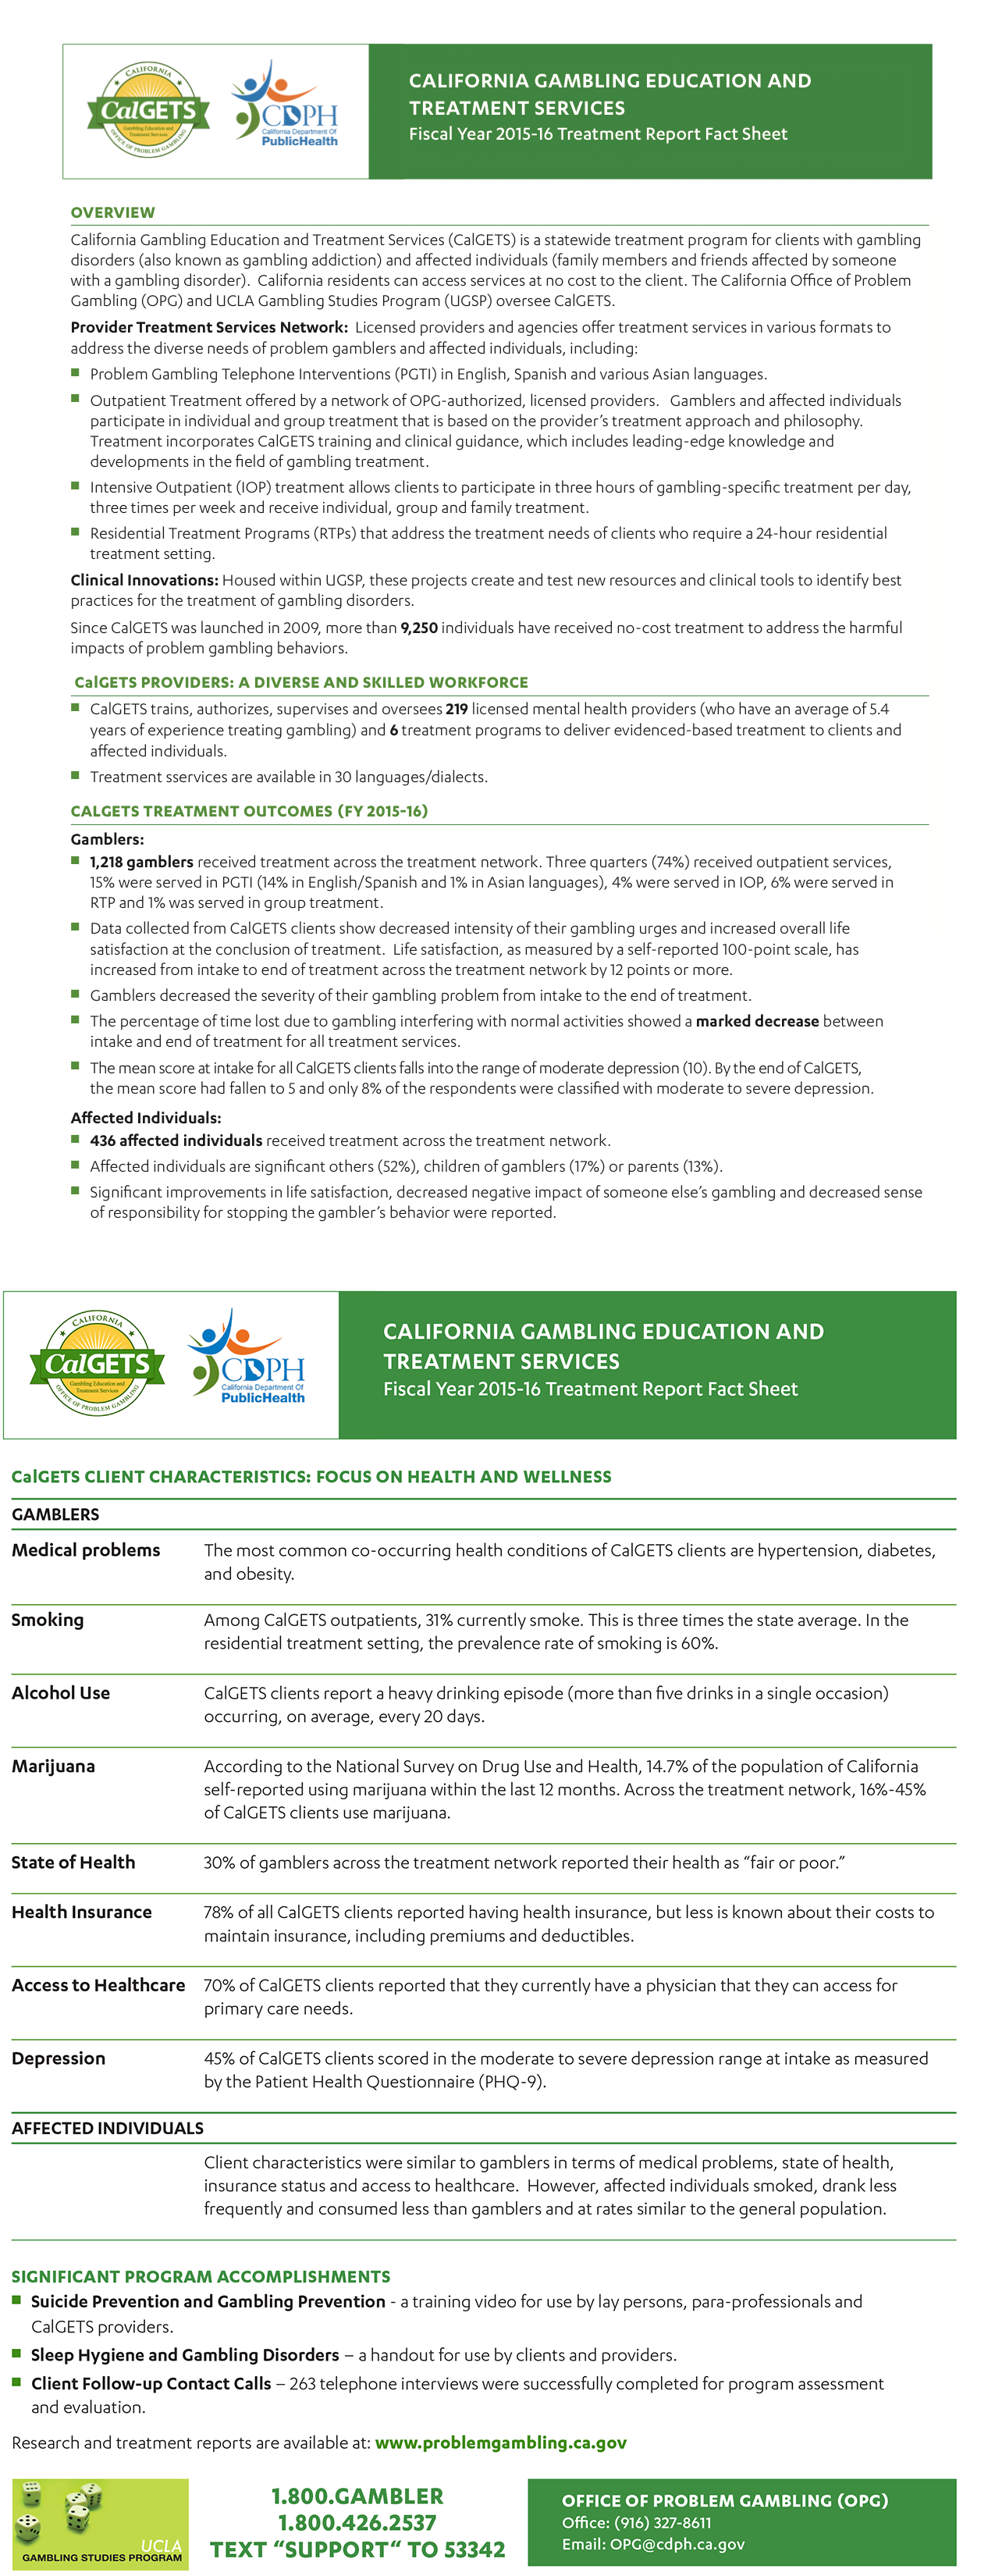 CalGETS Fact Sheet for FY 2015-2016